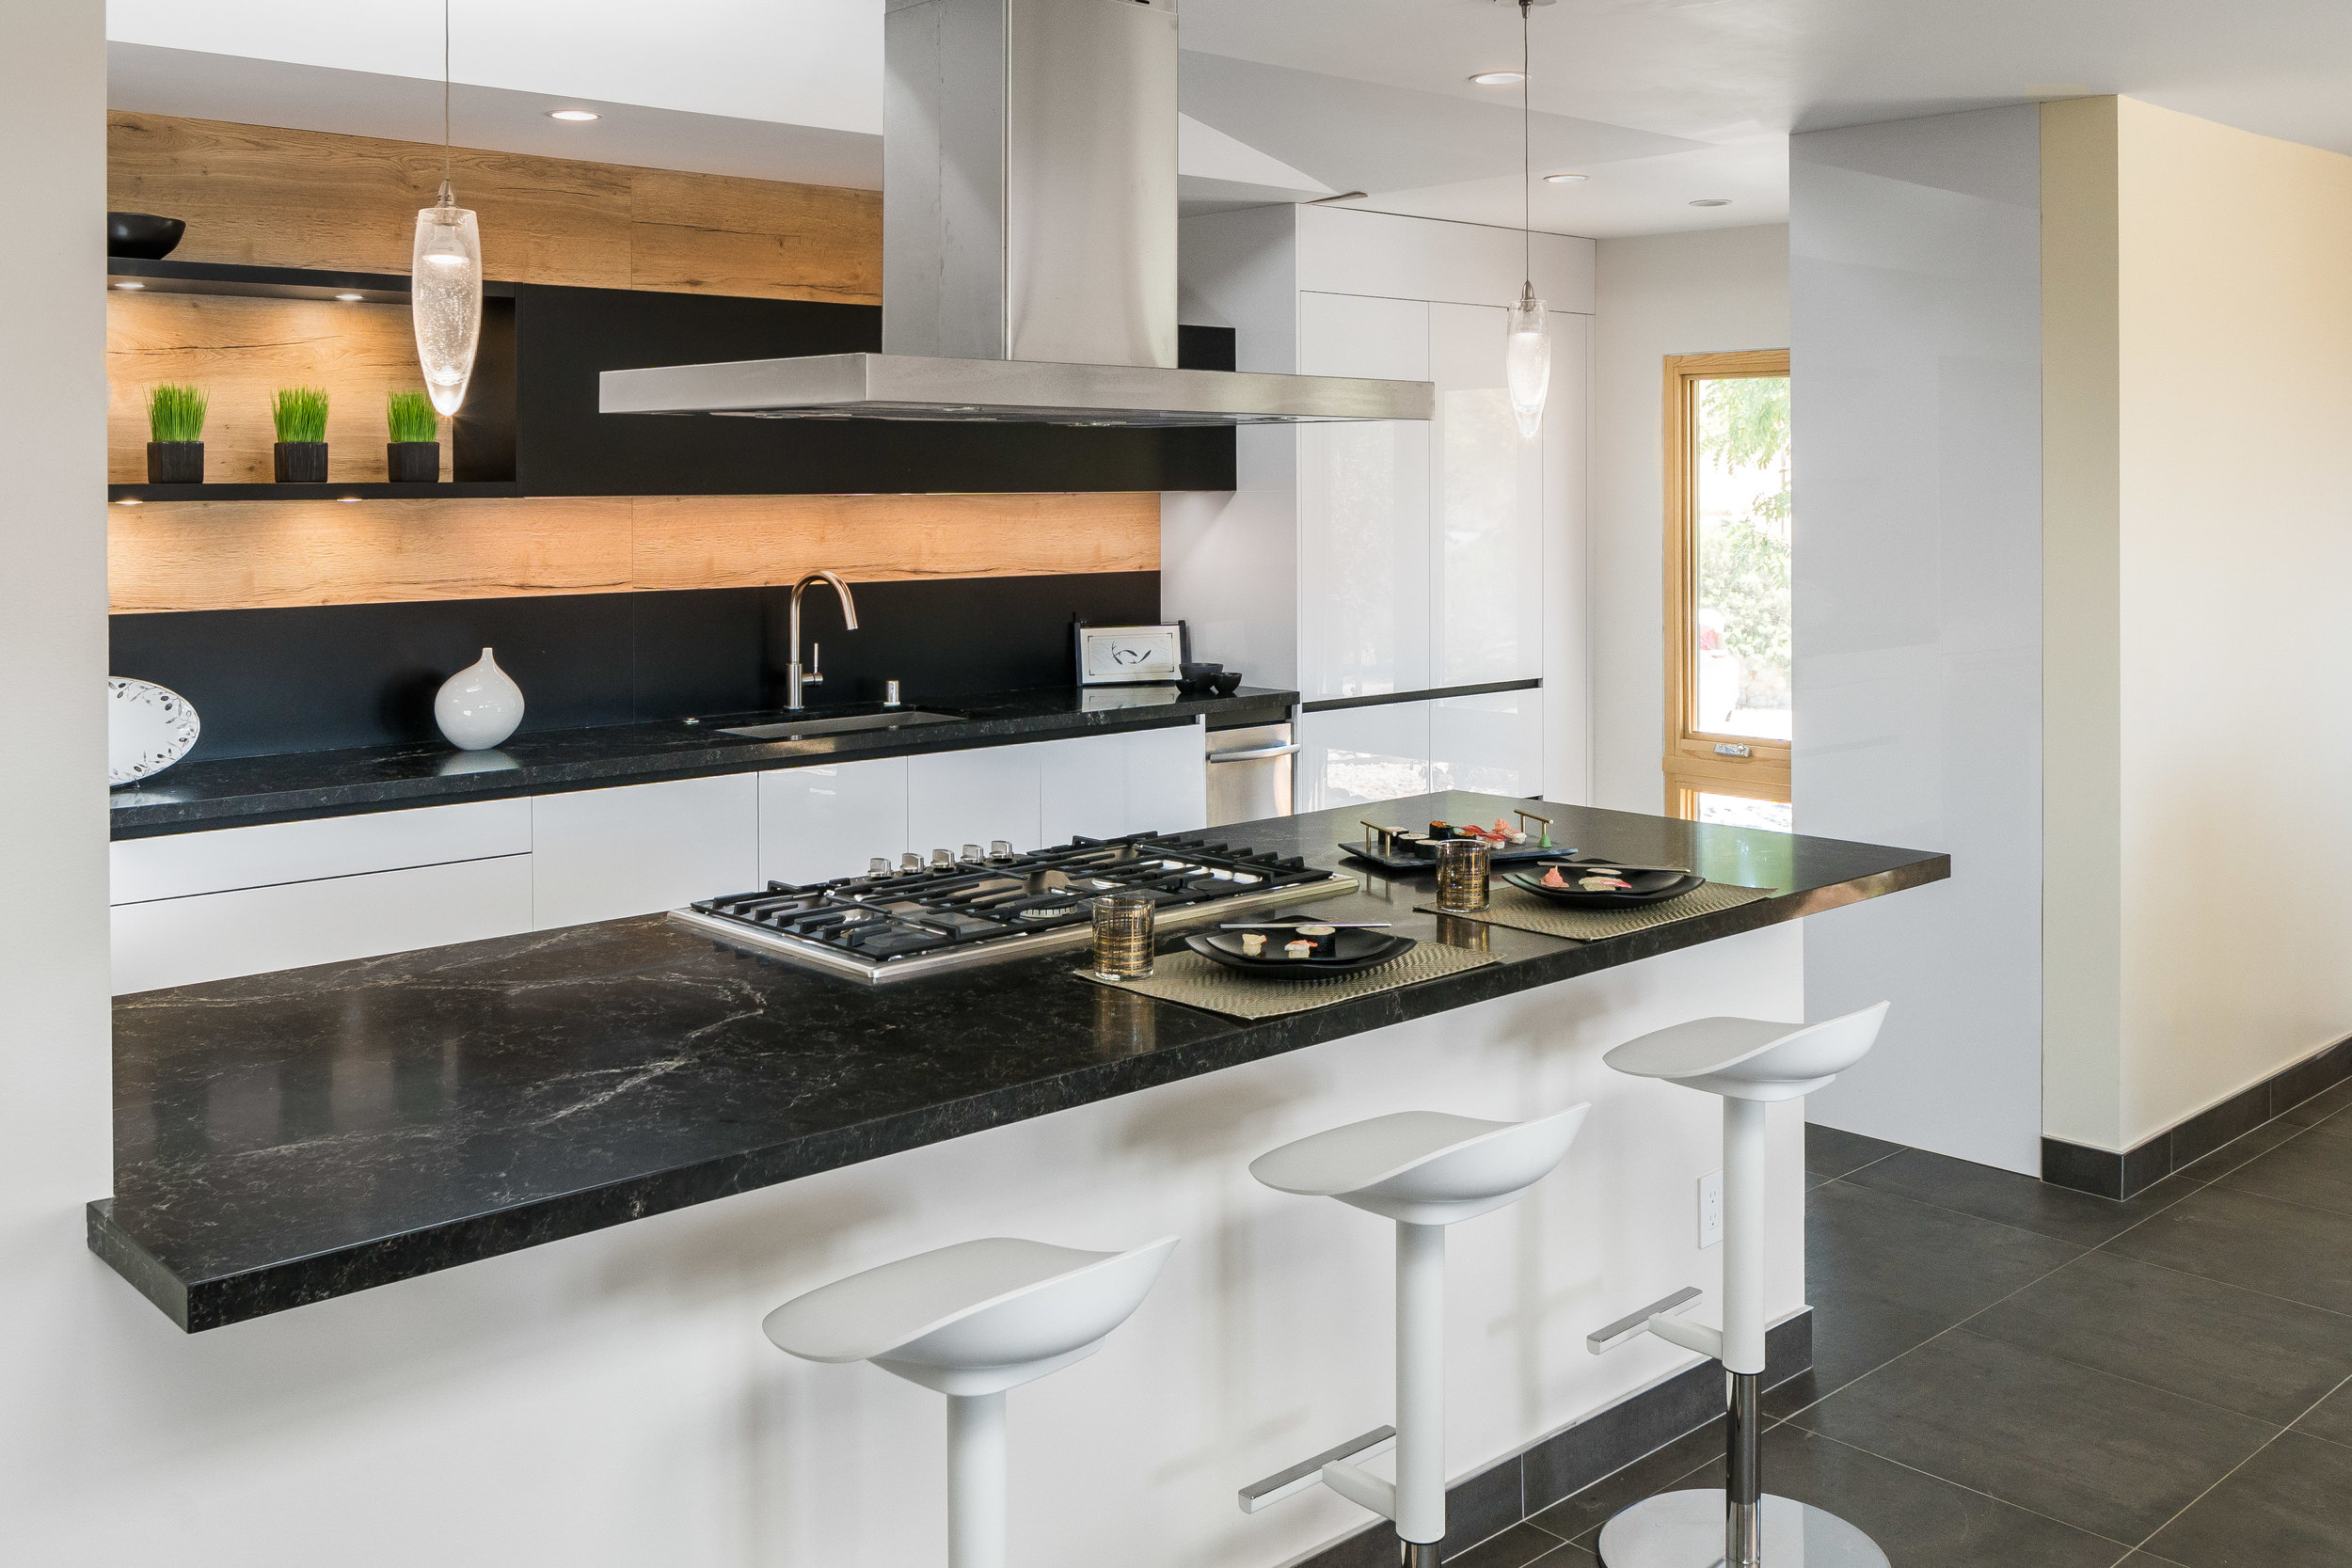 Snaidero USA kitchen remodel ©Ryan Carr - Legacy Listing Photography - 2018